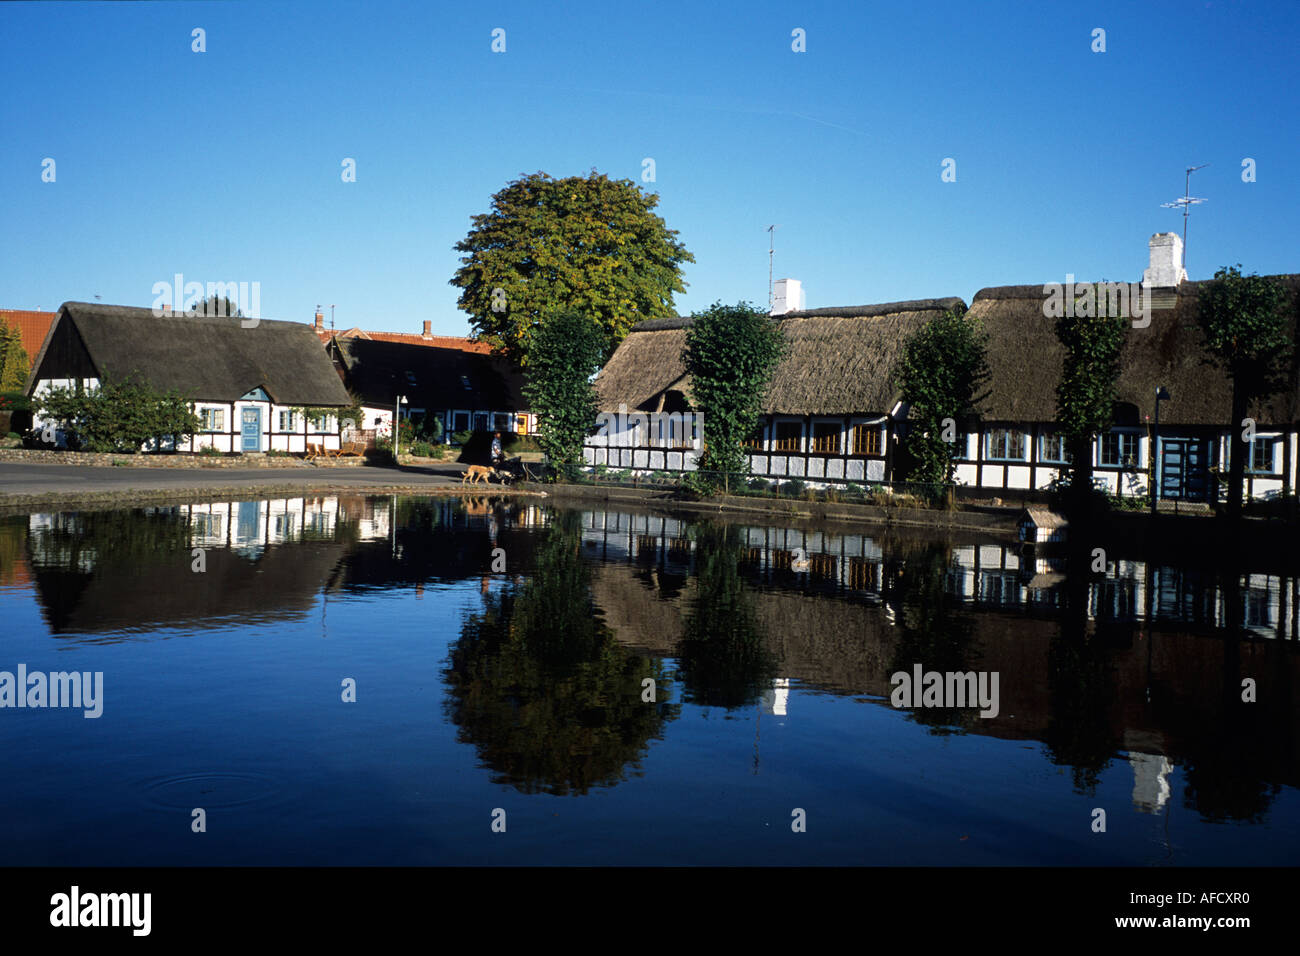 Nordby Bank Timberframe Houses On Samso Nordby Samso Denmark Stock Photo